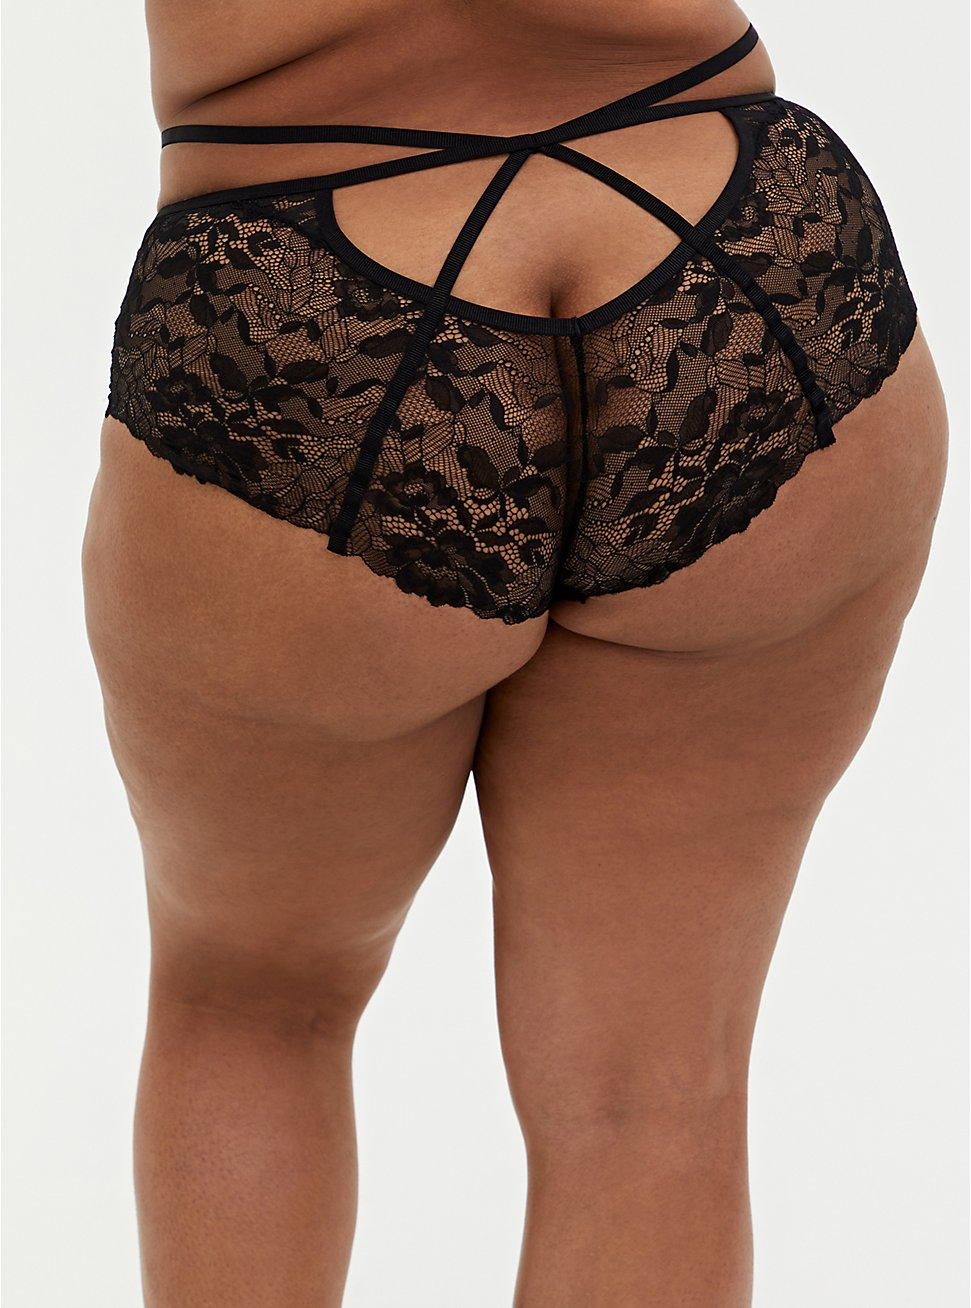 Black Strappy Chantilly Lace Open Back Cheeky Panty, RICH BLACK, hi-res